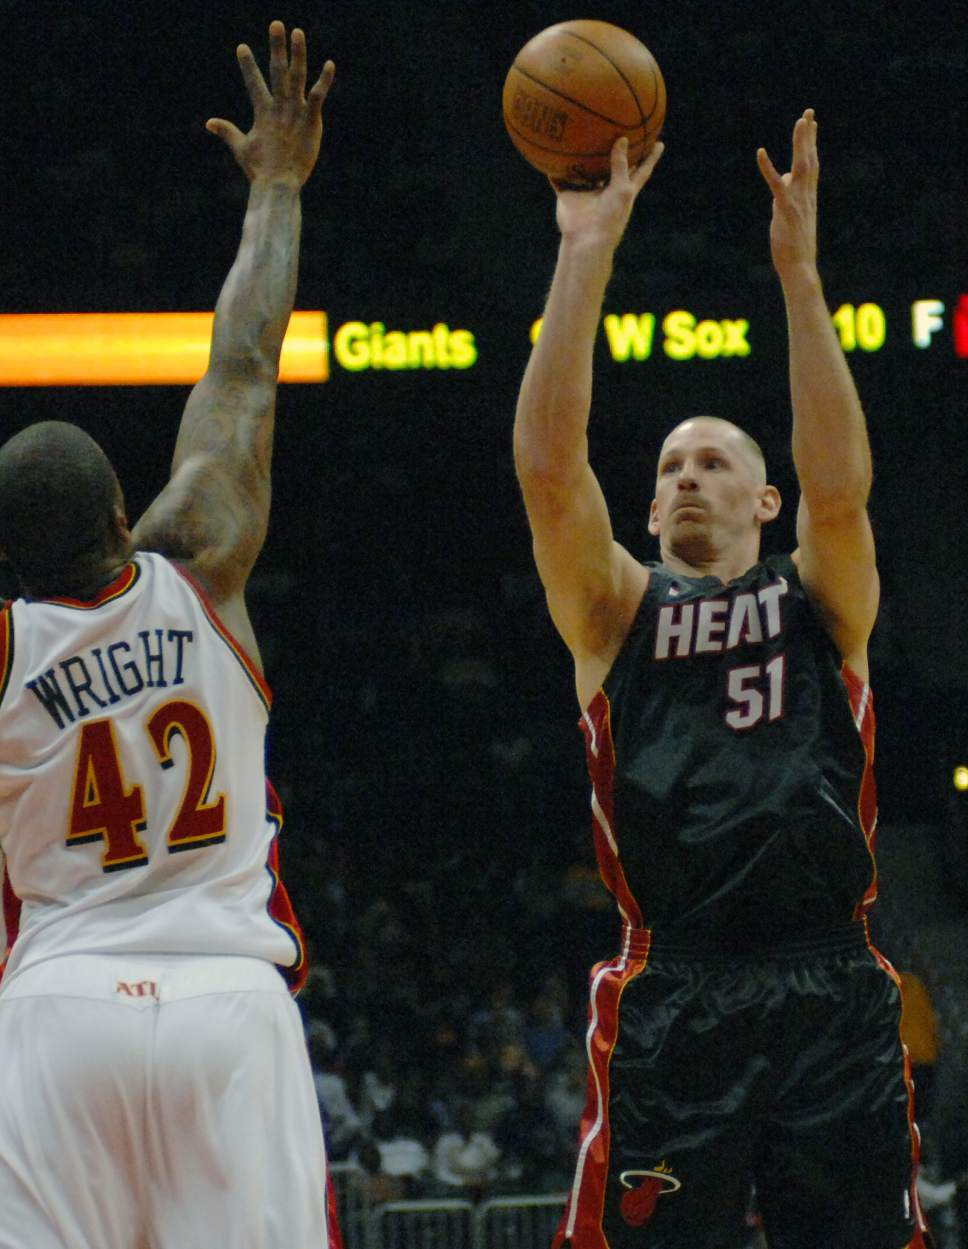 Miami Heat center Michael Doleac (51) takes a shot against Atlanta Hawks' Lorenzen Wright during the first quarter of an NBA basketball game, Wednesday, March 21,  2007, in Atlanta. (AP Photo/Gregory Smith)